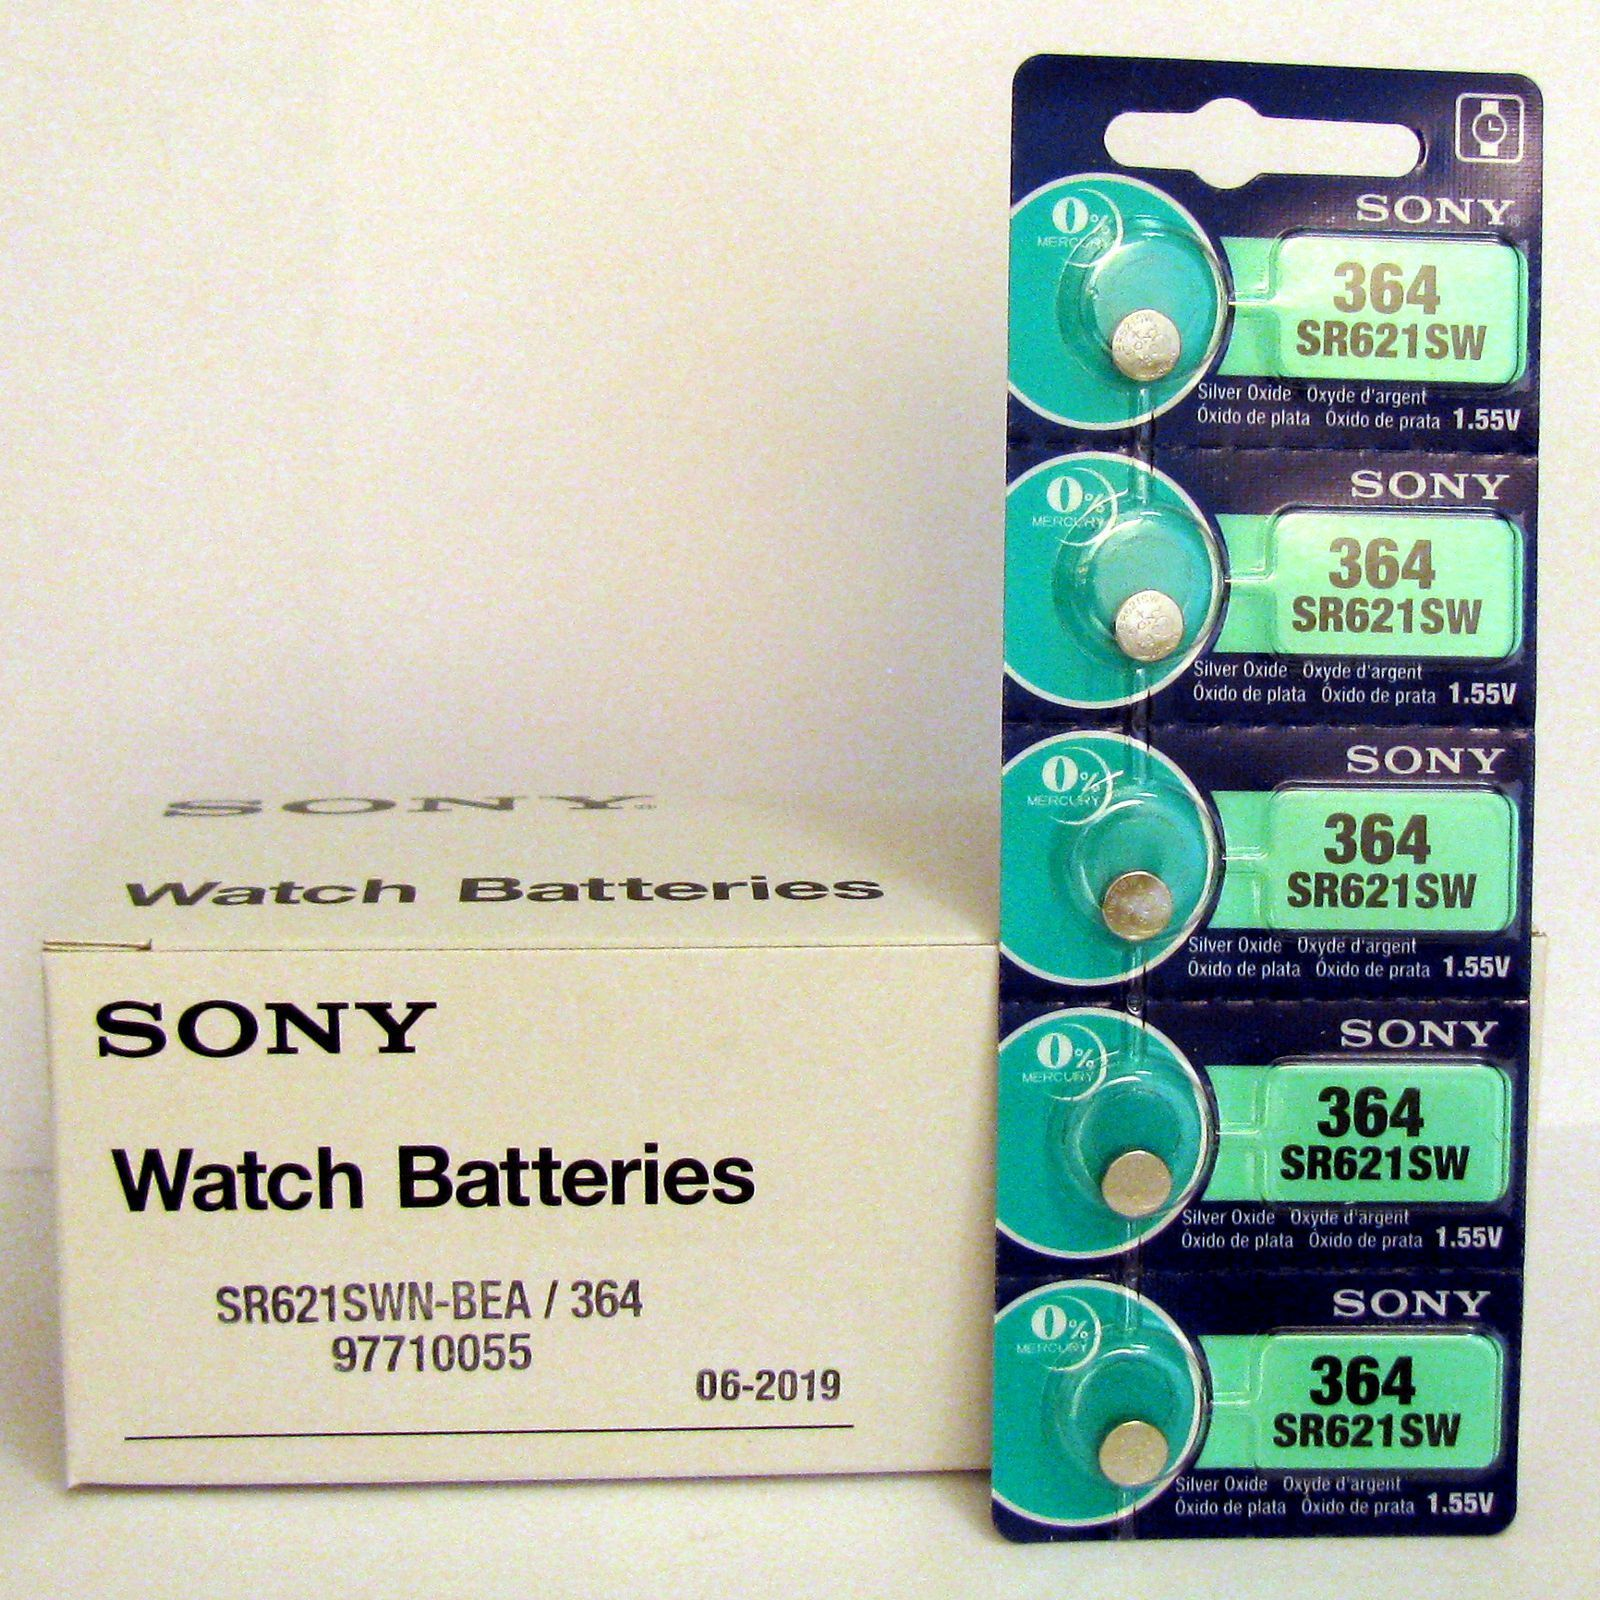 5 NEW SONY 364 SR621SW SR621 V364 LR621 SR60 Watch Battery EXP 09-2020 - FRESH